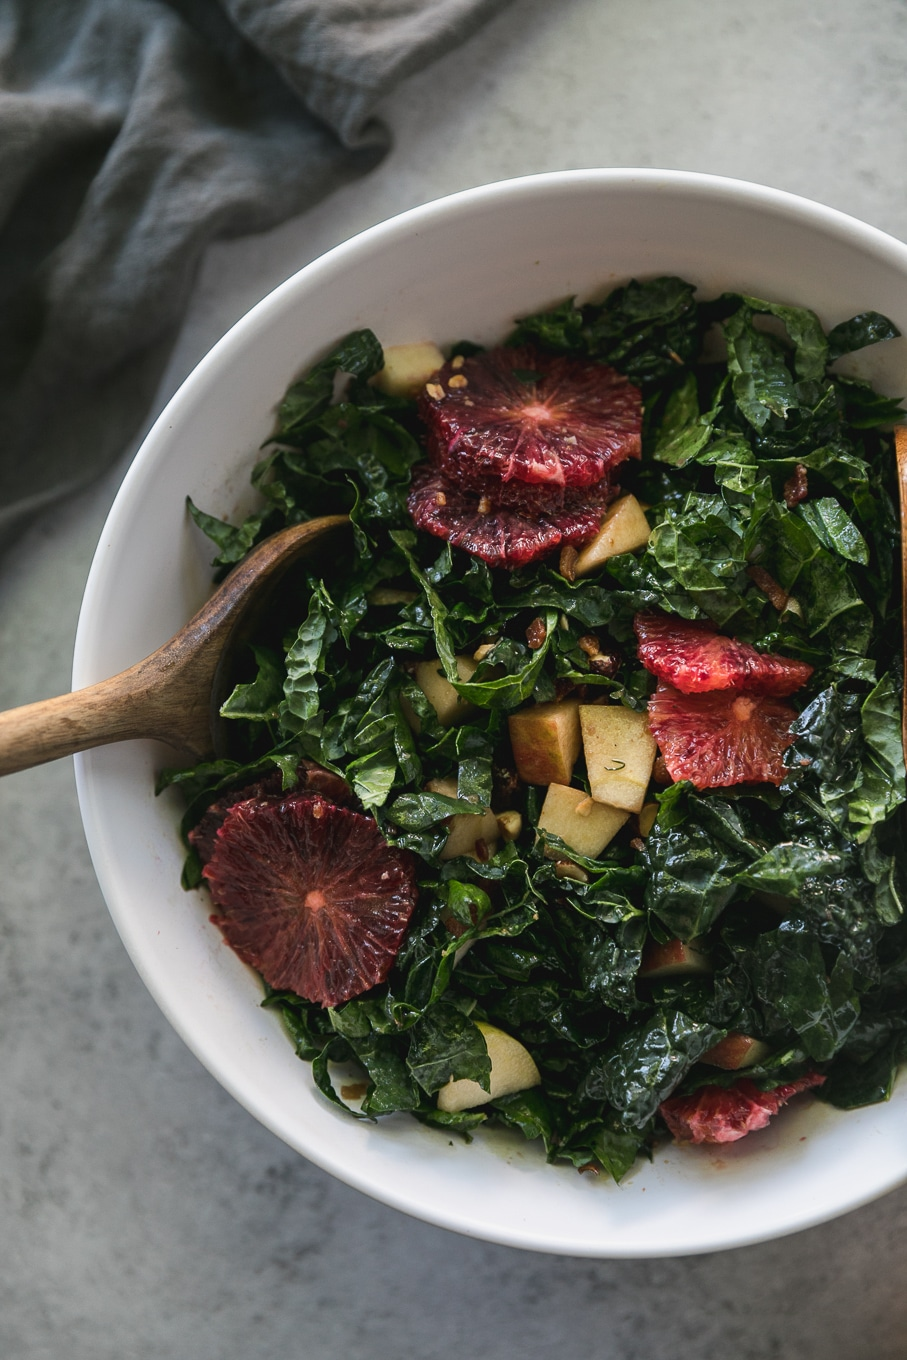 Overhead close up shot of a mixing bowl filled with kale salad with blood oranges and apples in it, as well as a wooden spoon